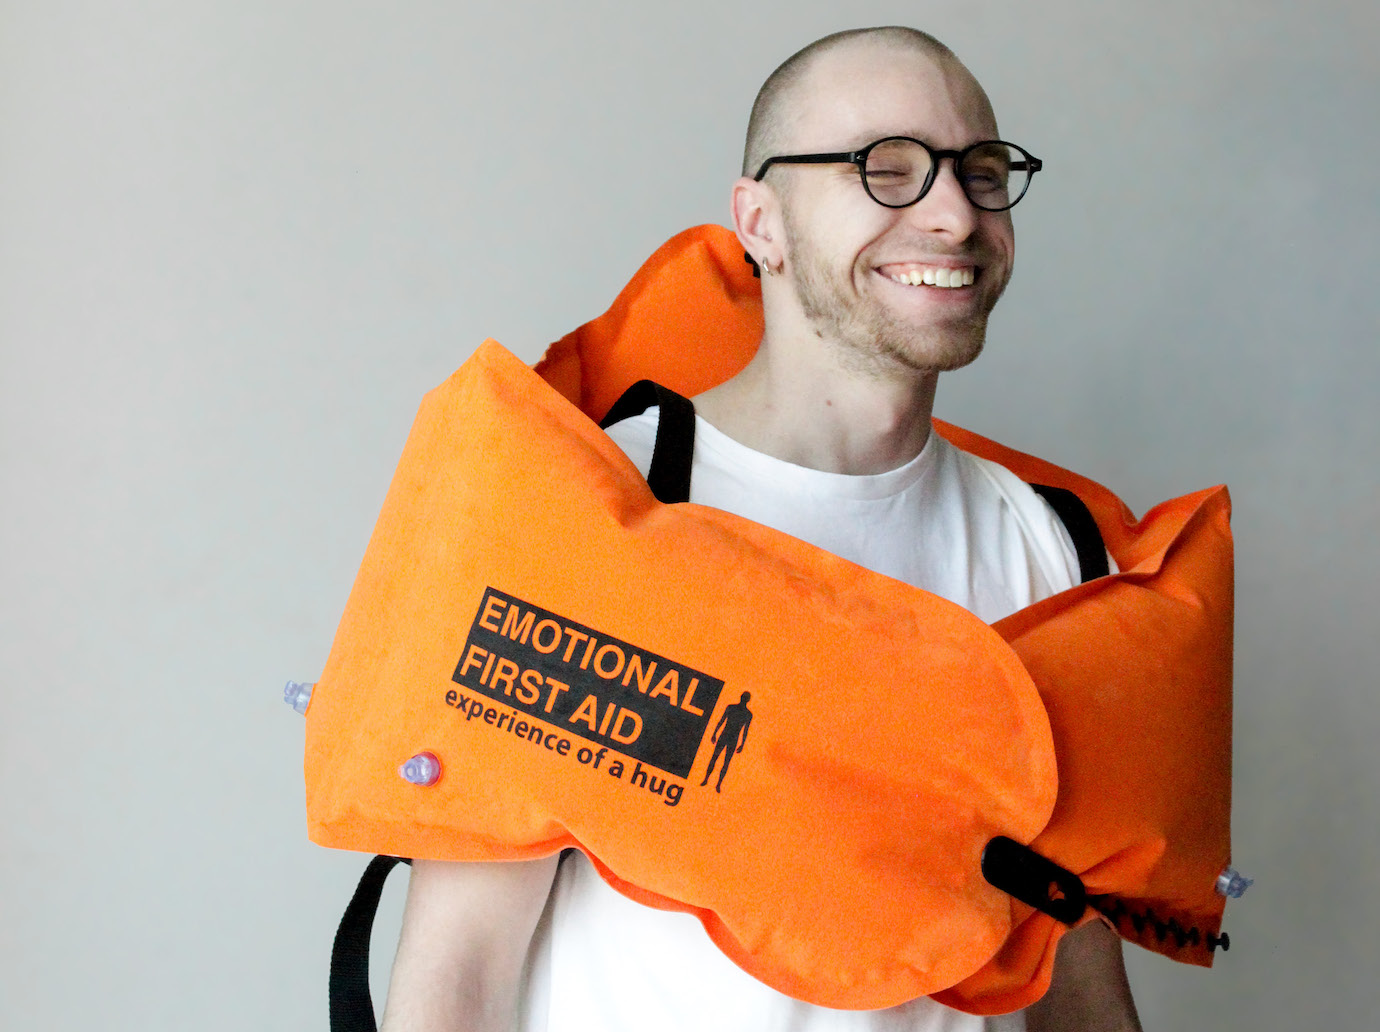 Emotional First Aid: this designer is recreating the experience of a hug